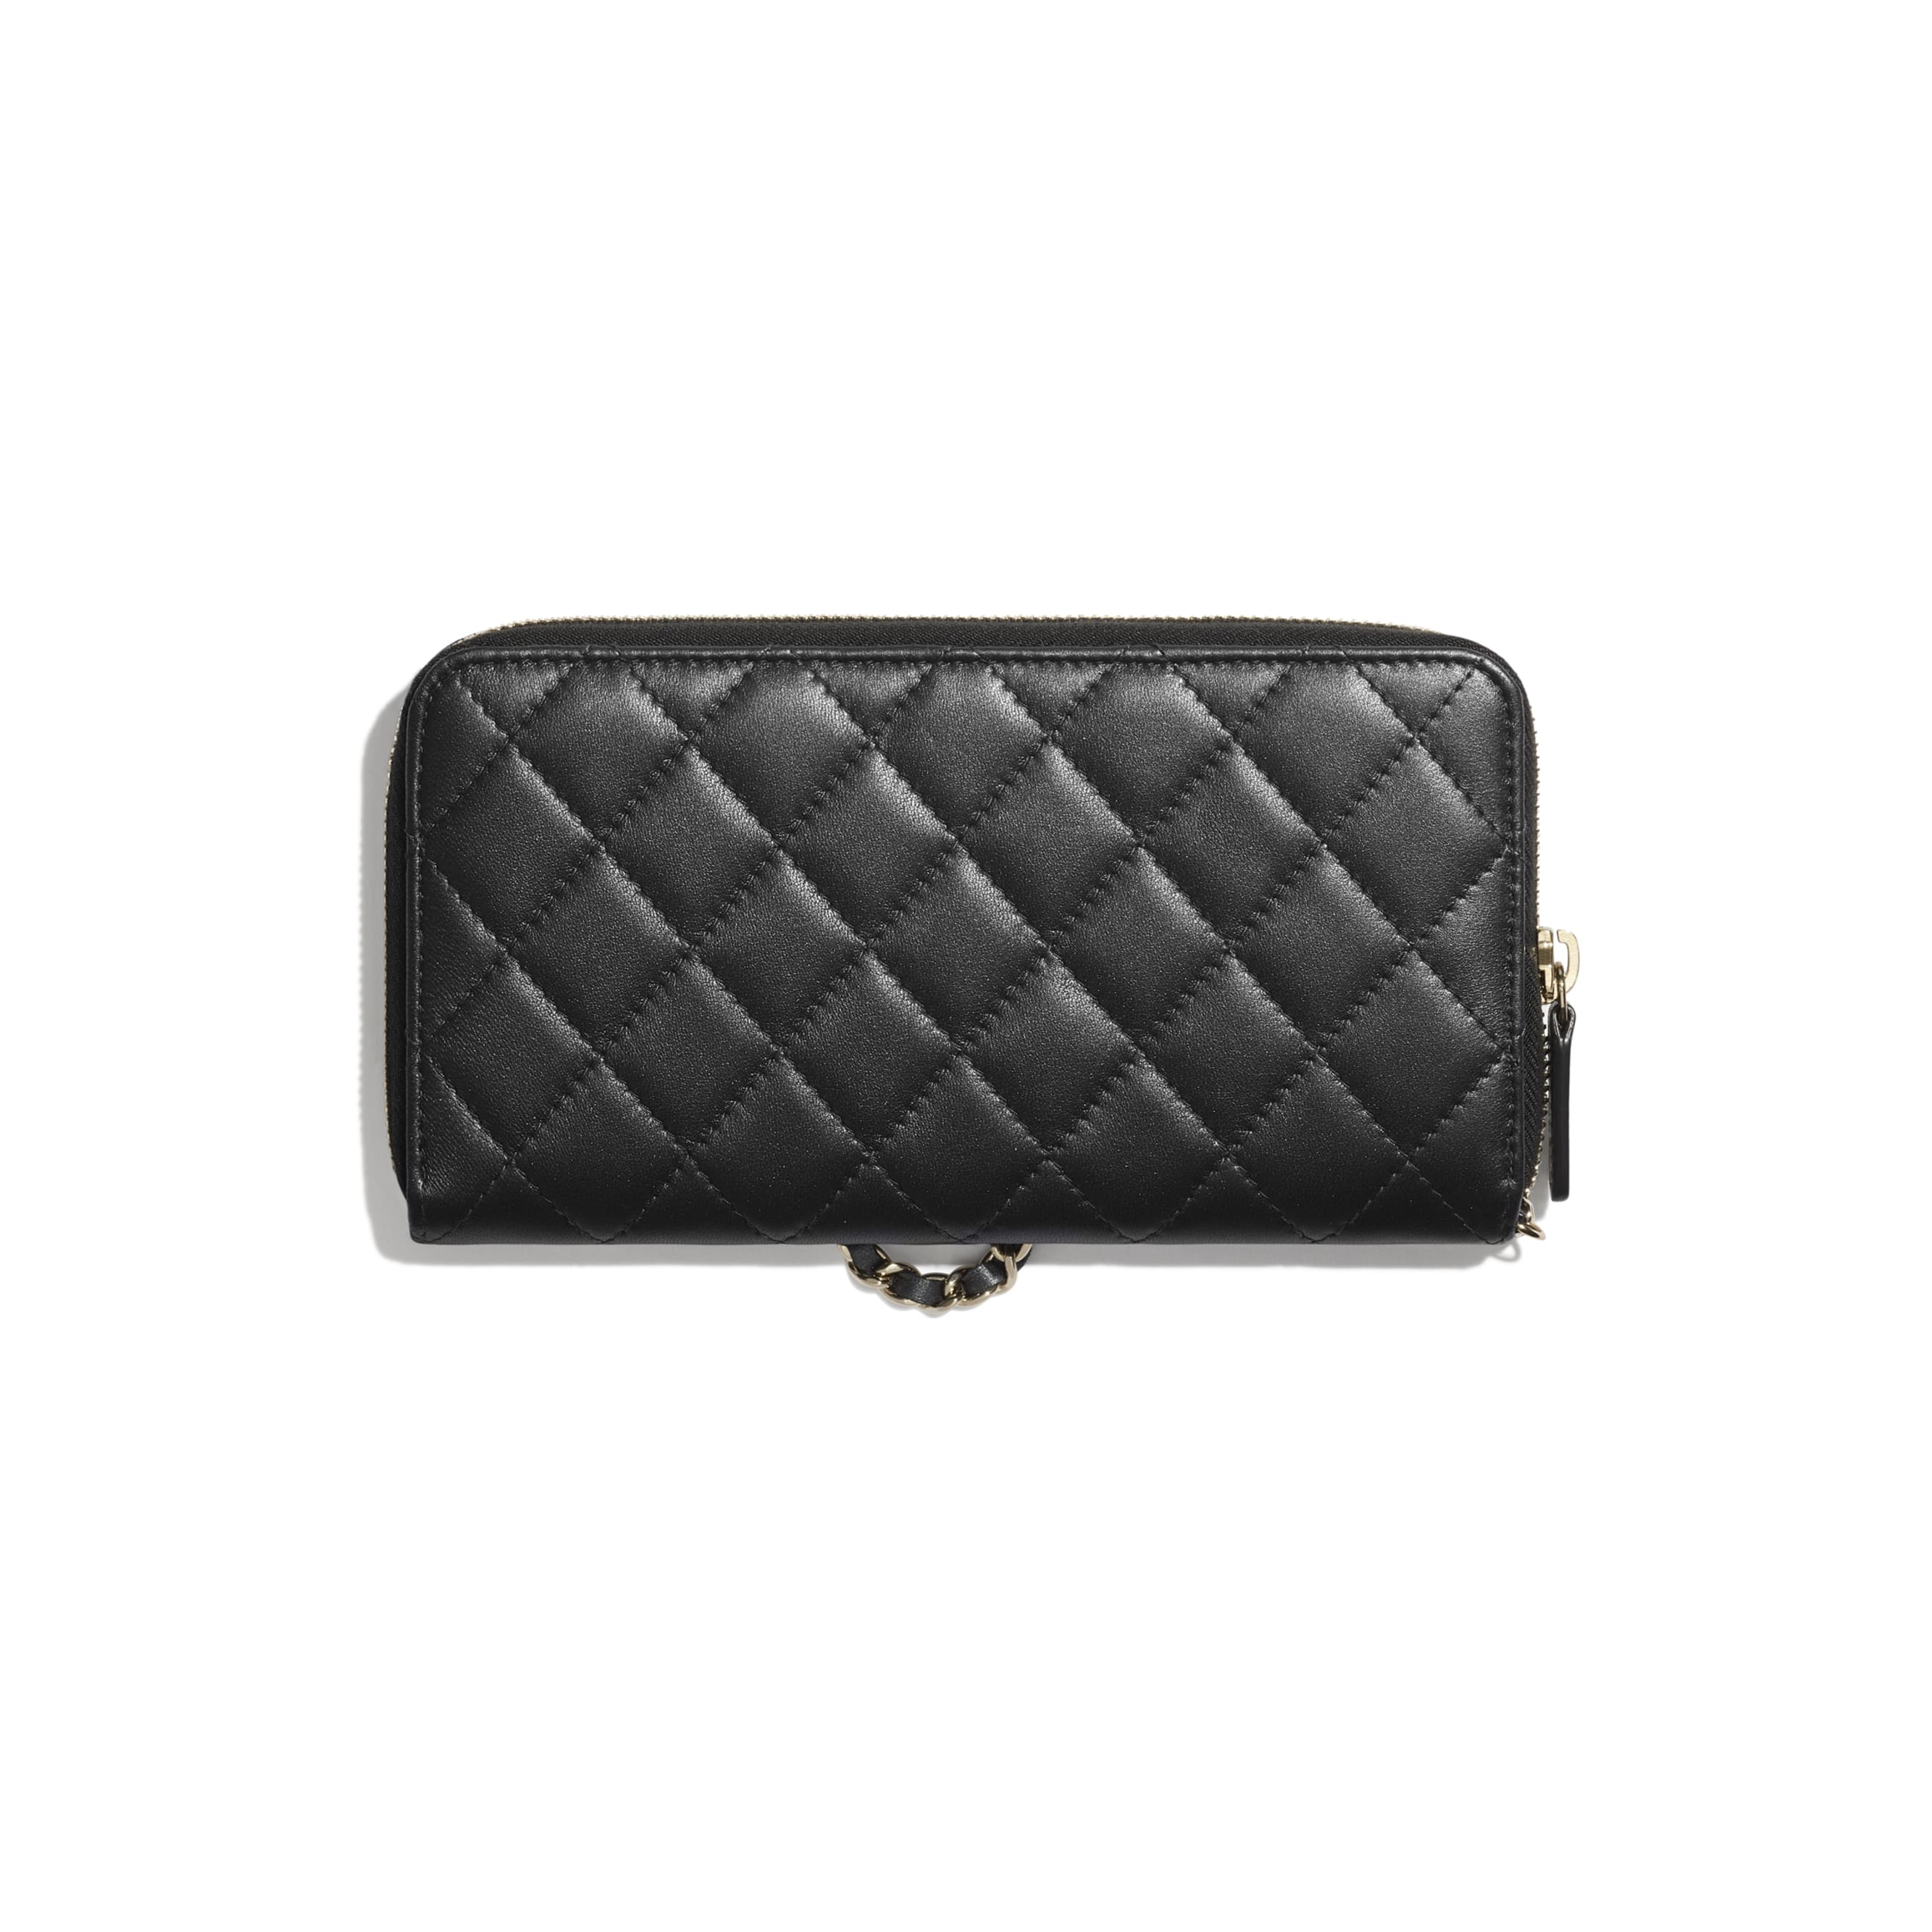 Zipped Wallet With Handle - Black - Iridescent lambskin & gold-tone metal - CHANEL - Alternative view - see standard sized version